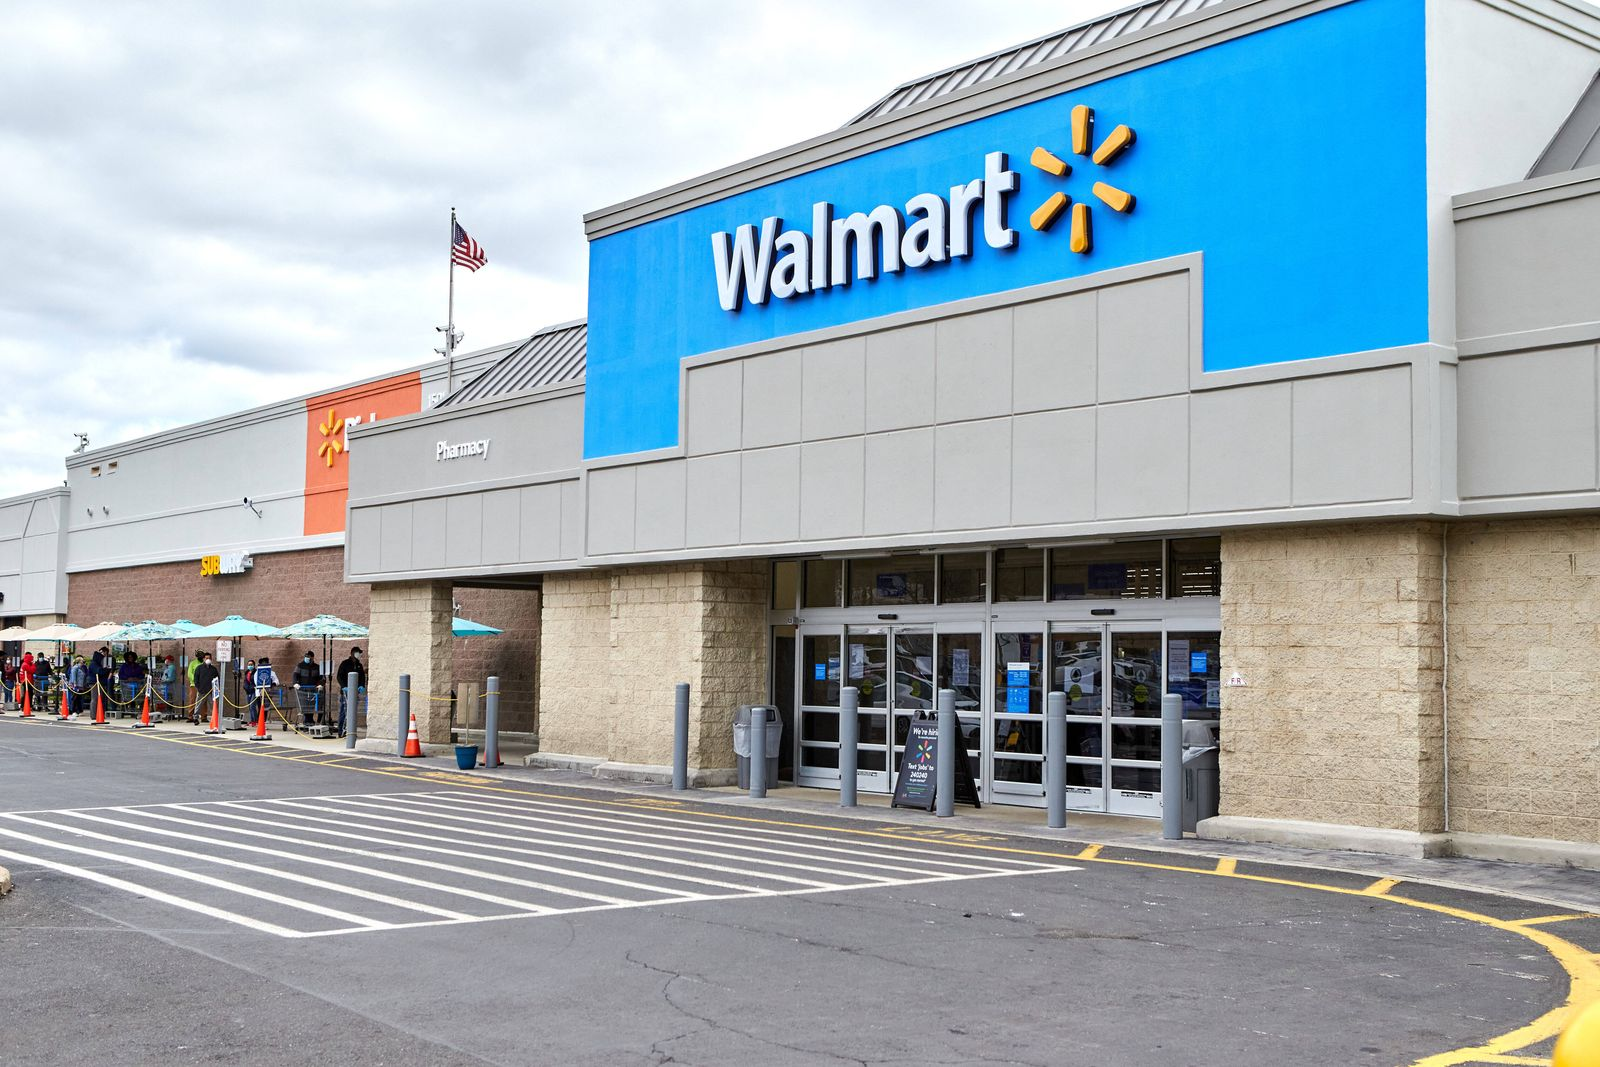 April 4, 2020, Scotch Plains, New Jersey, USA: Walmart enforces practicing social distancing during this covid-19 pande